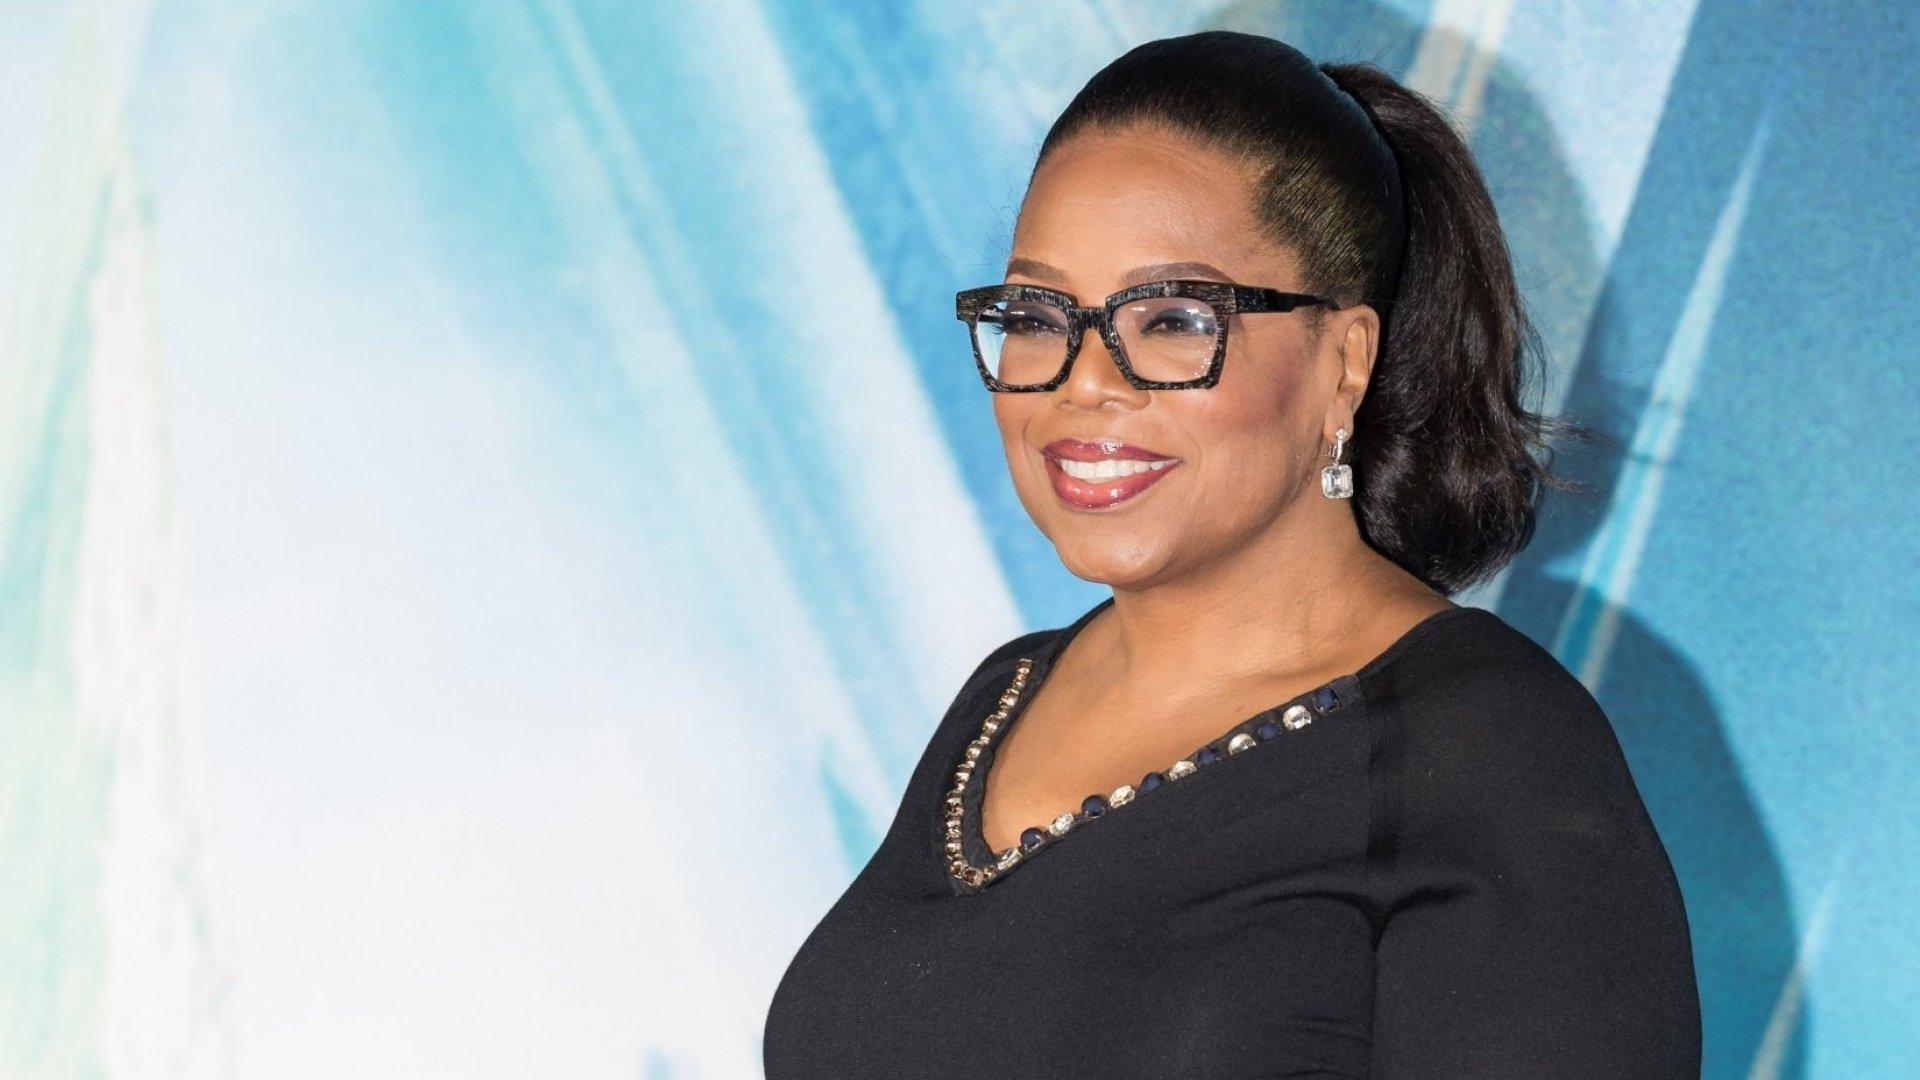 5 Tips From Oprah's Doctor to Help You Get a Better Night's Sleep (and Be More Productive)